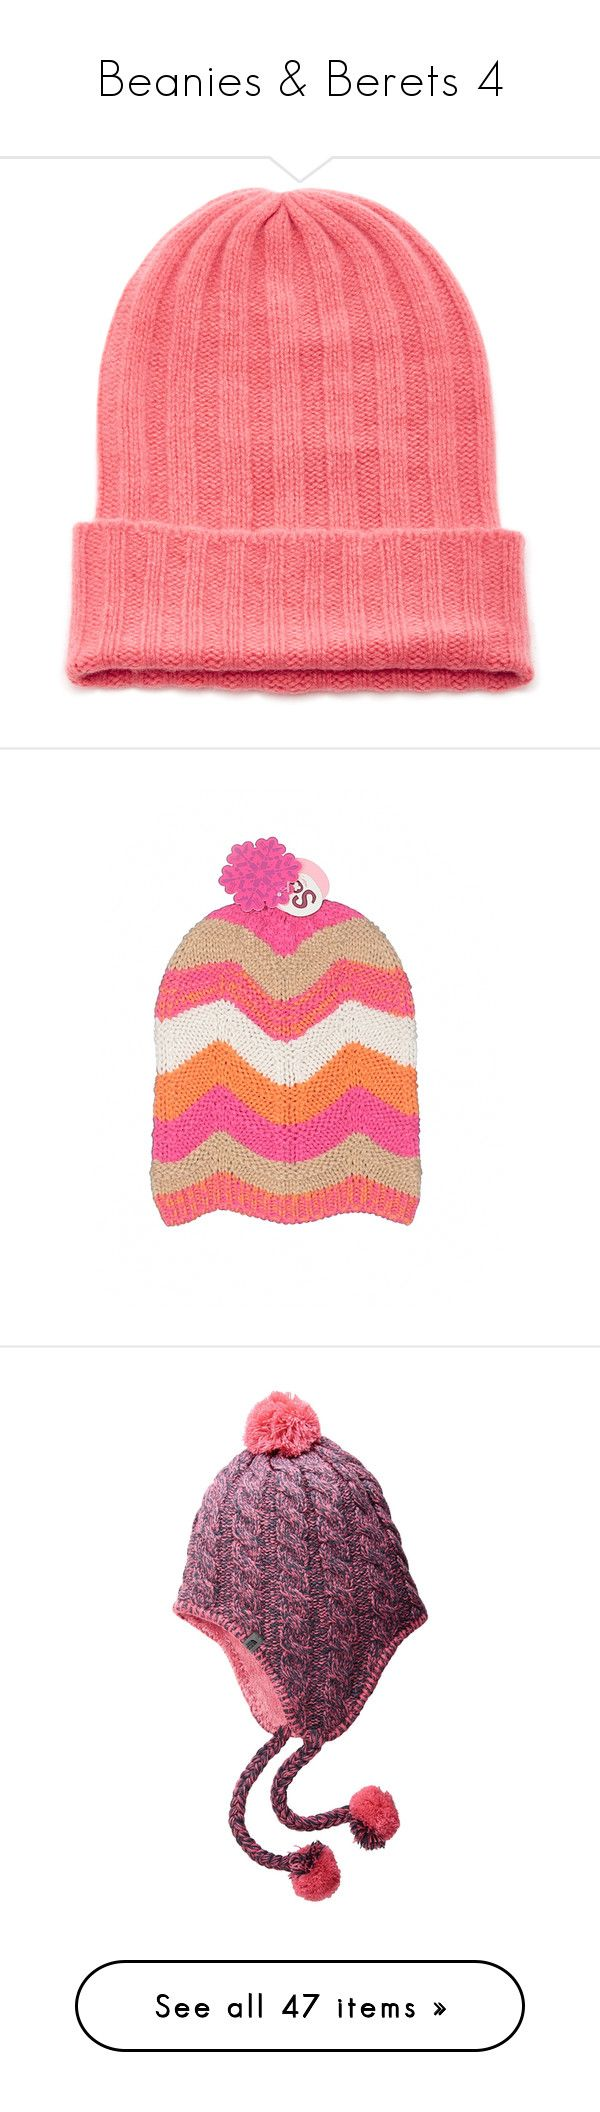 """""""Beanies & Berets 4"""" by middletondonna ❤ liked on Polyvore featuring accessories, hats, pink, pink beanie, adjustable hats, ribbed hat, cashmere beanie, bunny hat, acrylic hat and pink beanie hat"""